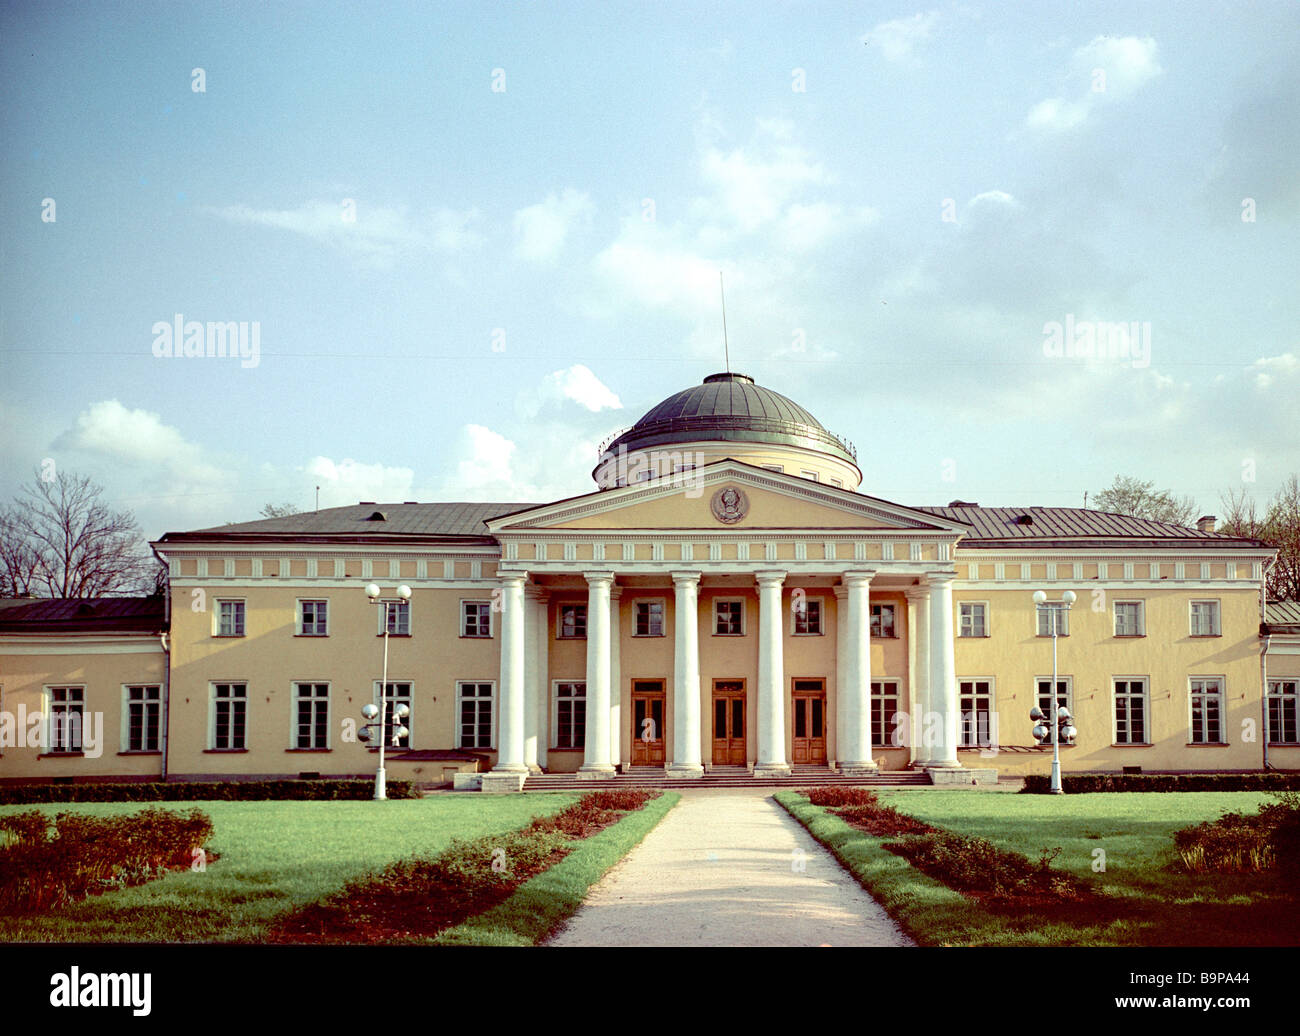 The Tavrichesky Palace a classicism landmark of the 18th century second half Built by architect Starov in 1789 - Stock Image